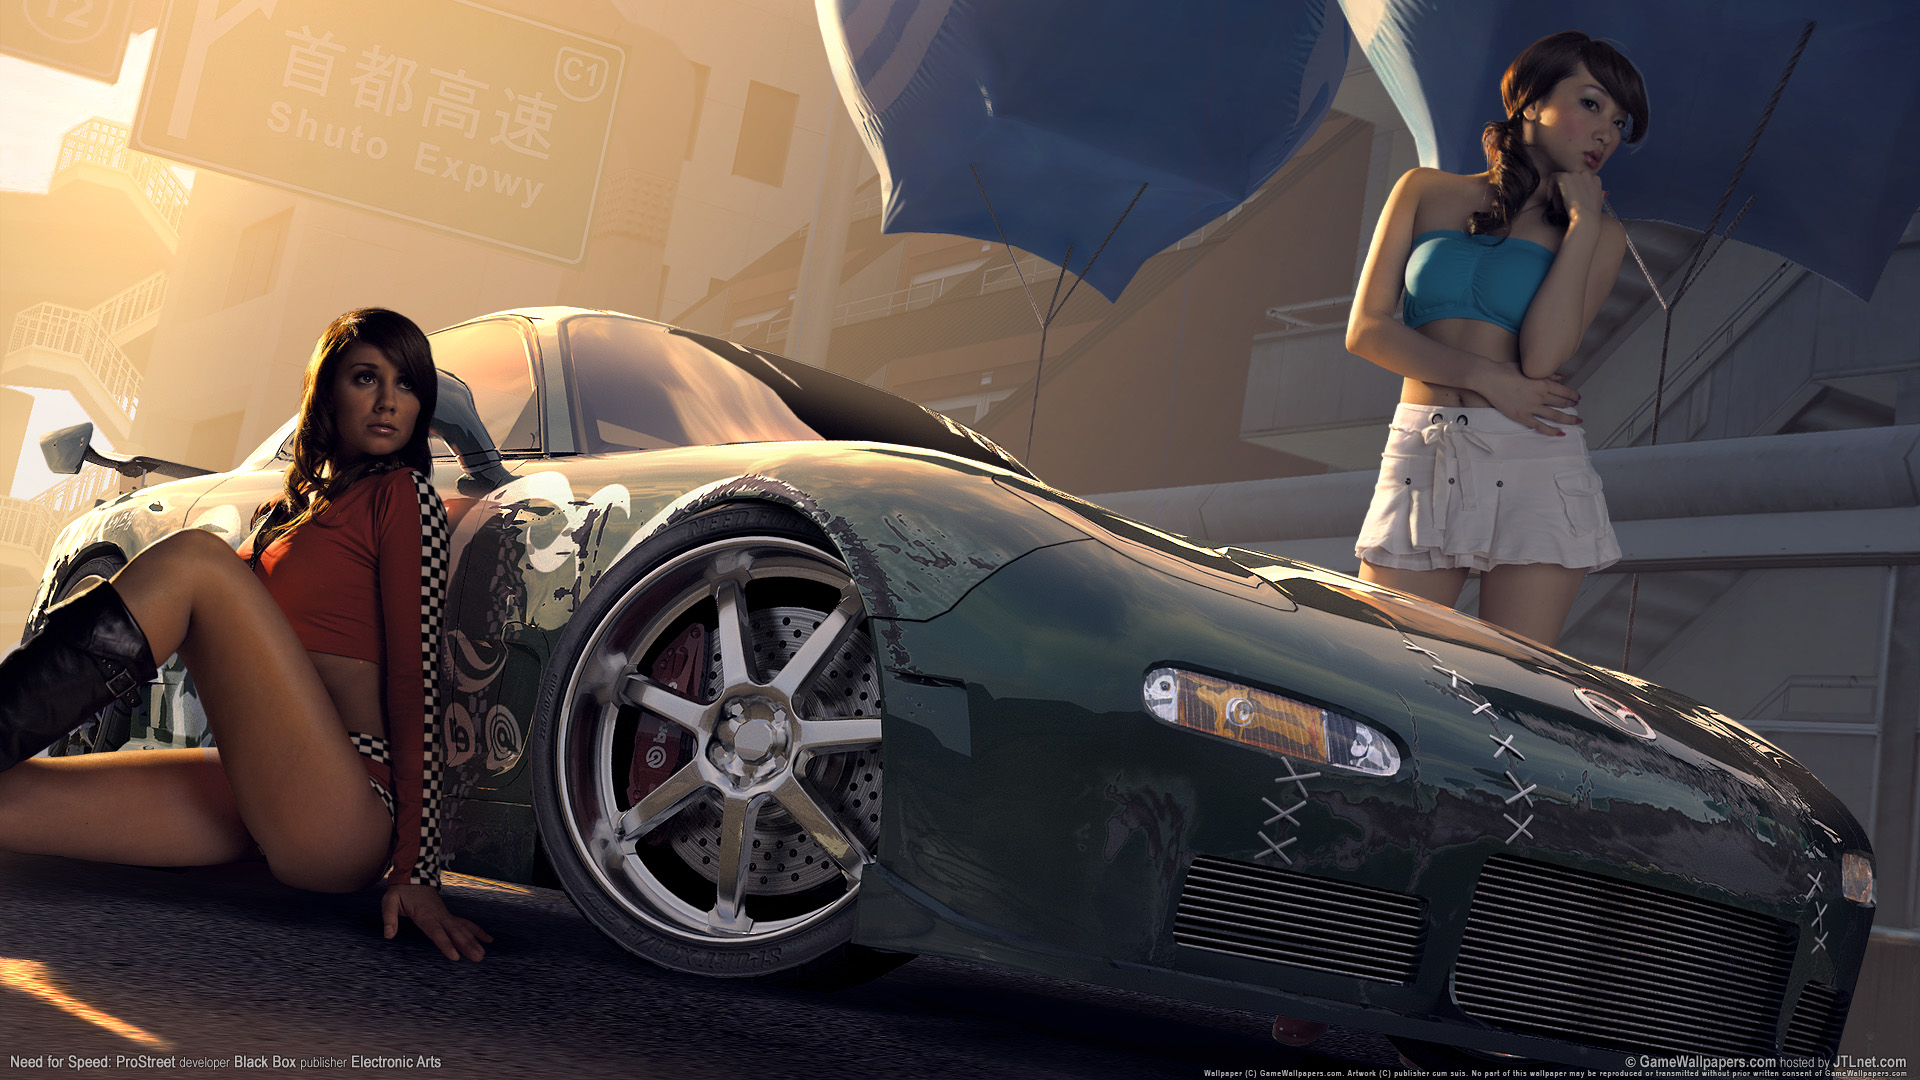 Need for speed prostreet Girls 5 825.11 Kb